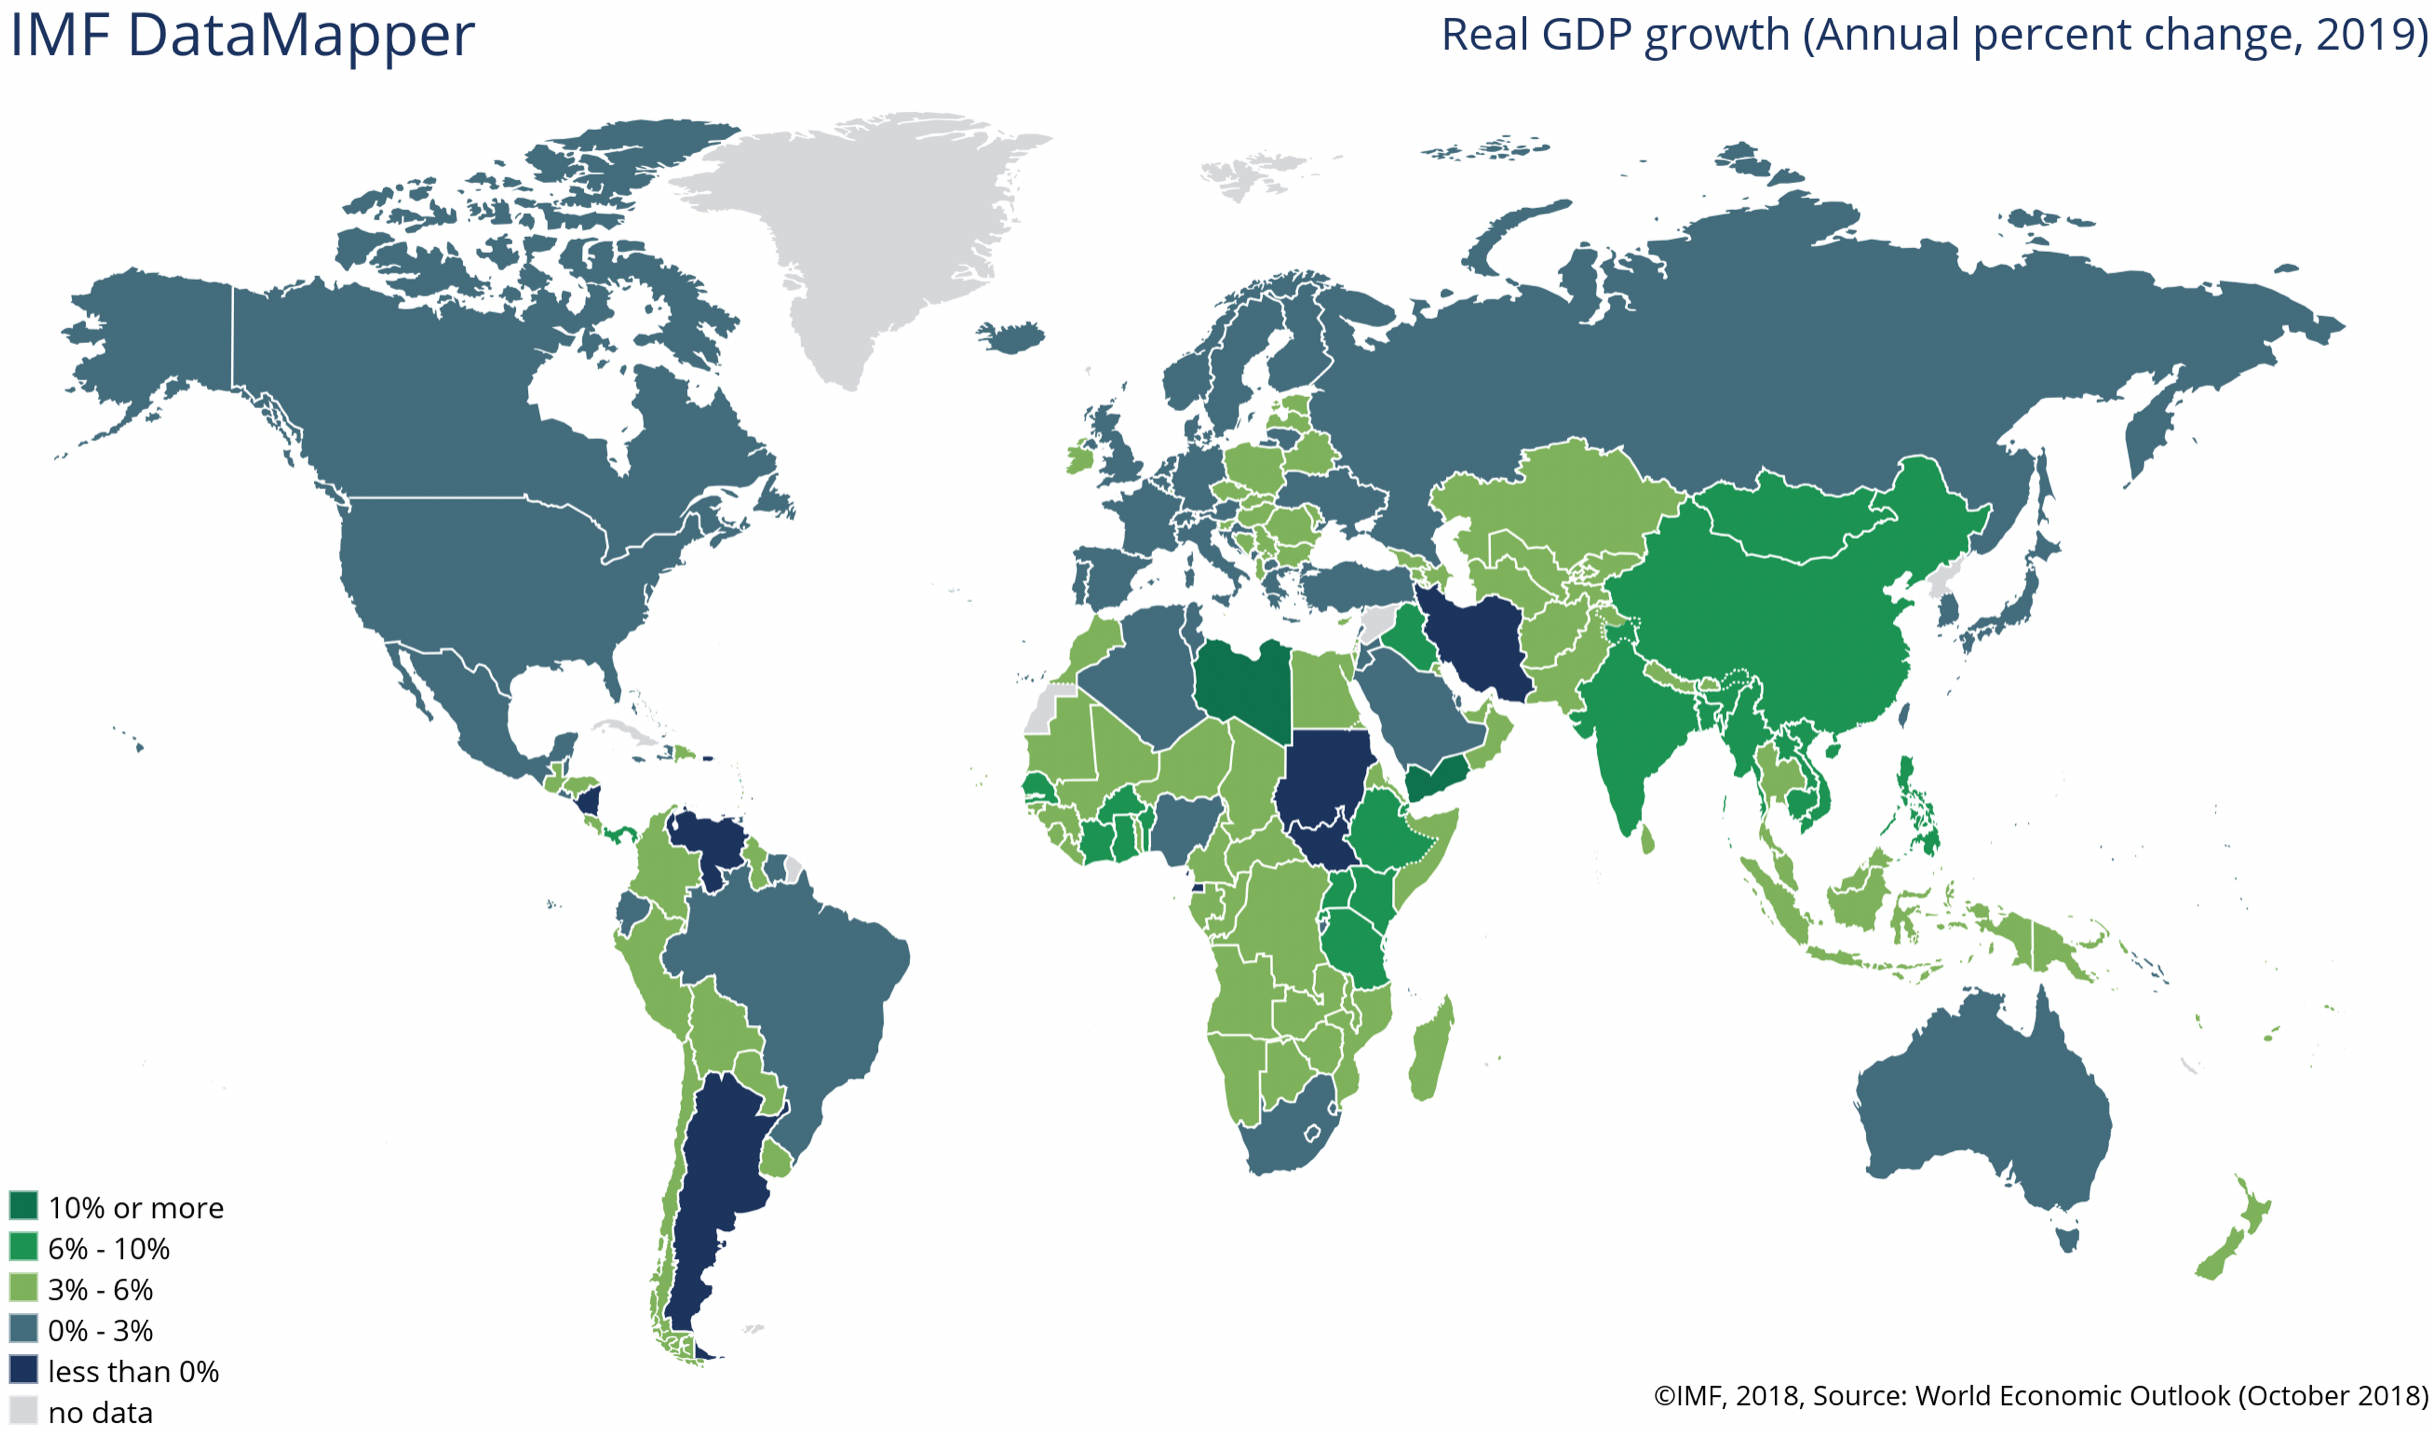 Real GDP Growth in Africa